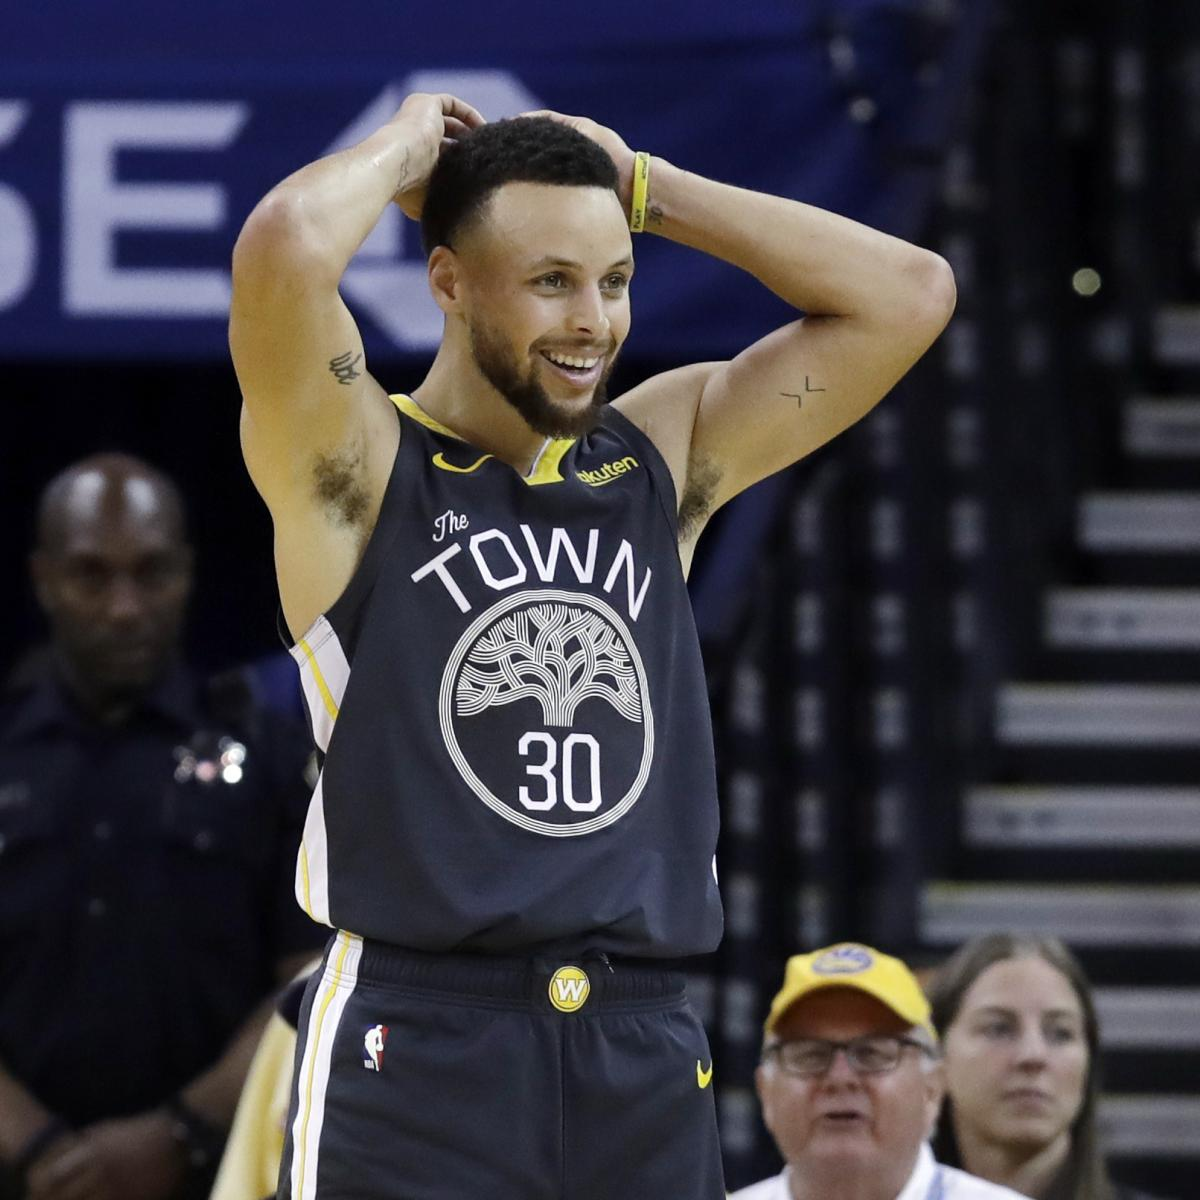 Rockets Vs Warriors Jan 3 2019: Steph Curry Expected To Play In Warriors Vs. Rockets Game